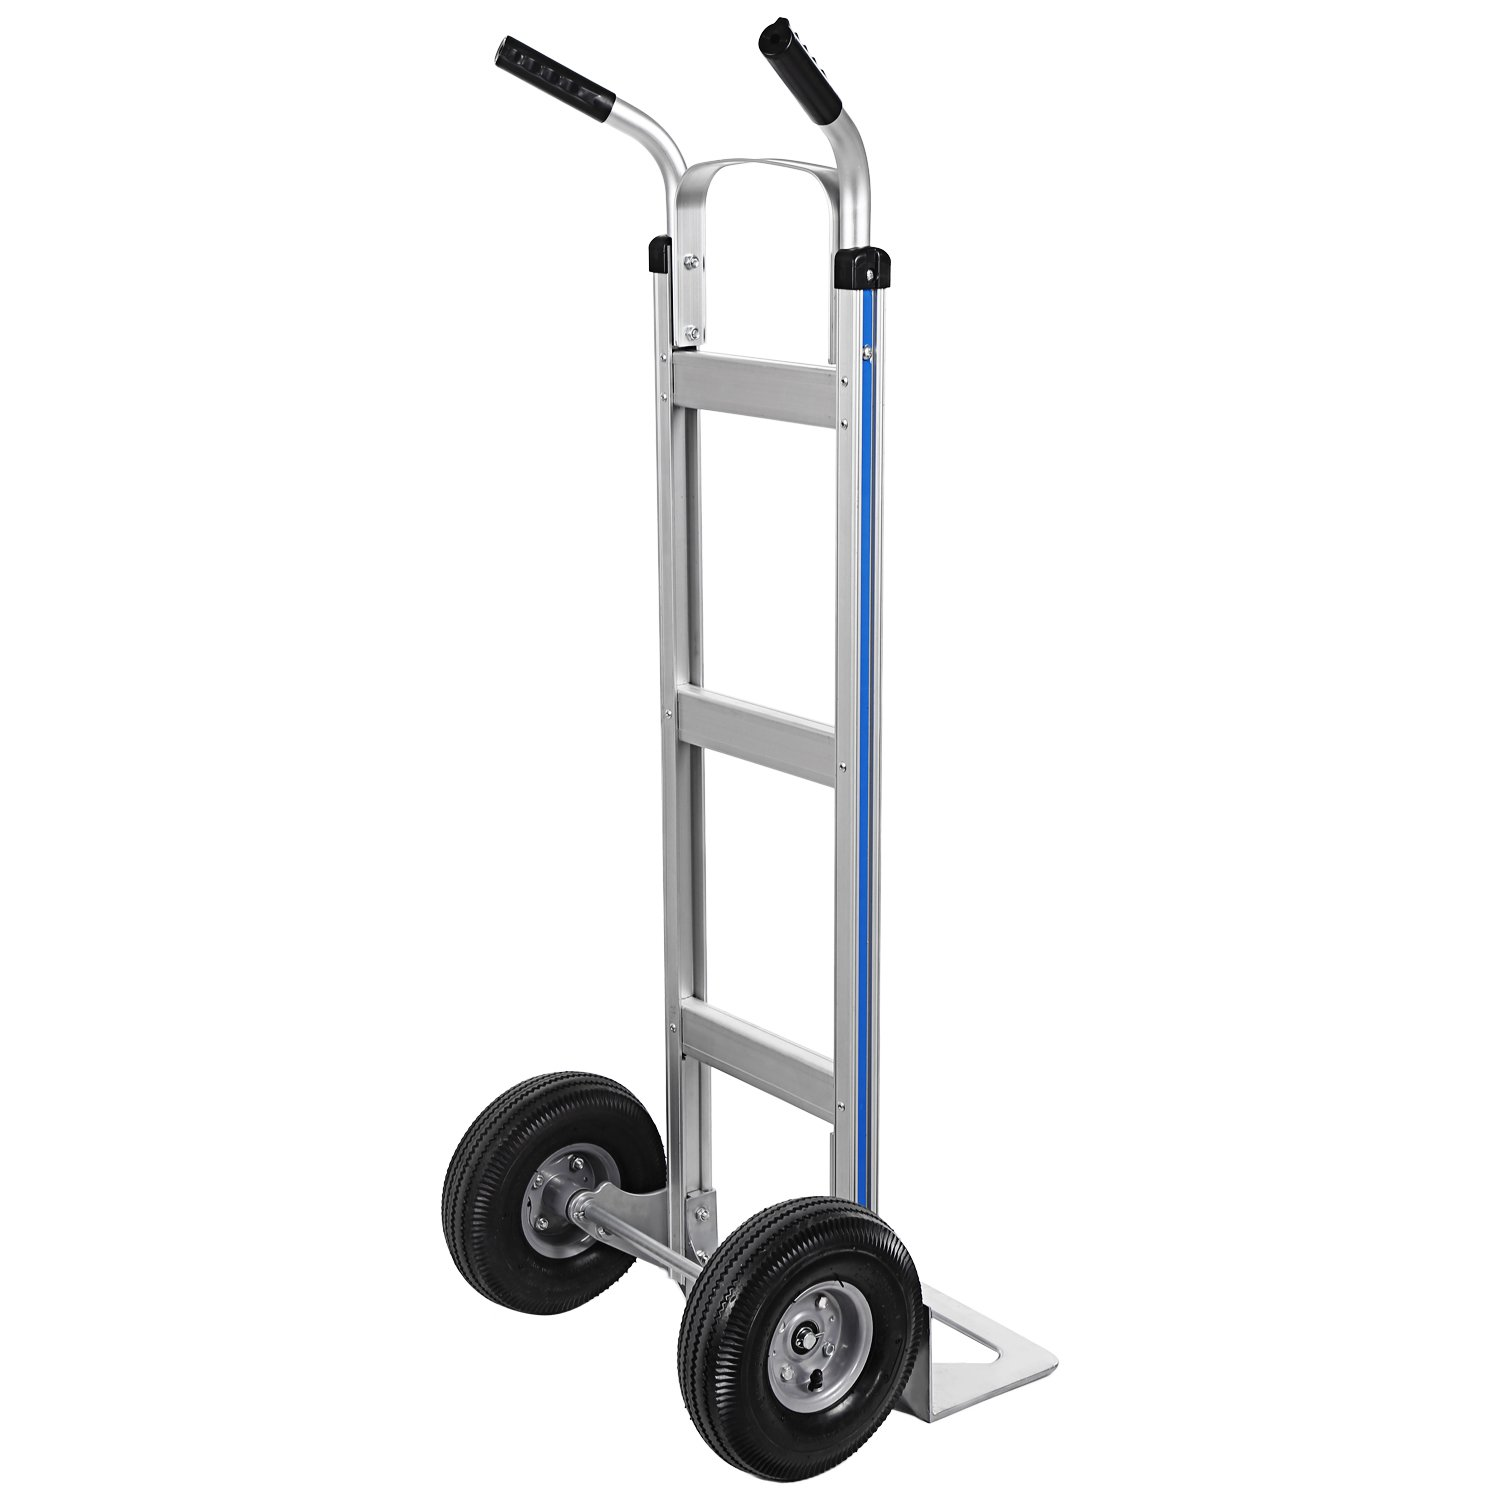 Portable 500 lbs Capacity Heavy Duty Aluminum Trolley Dolly Cart Hand Truck for Indoor Outdoor Travel Shopping Office